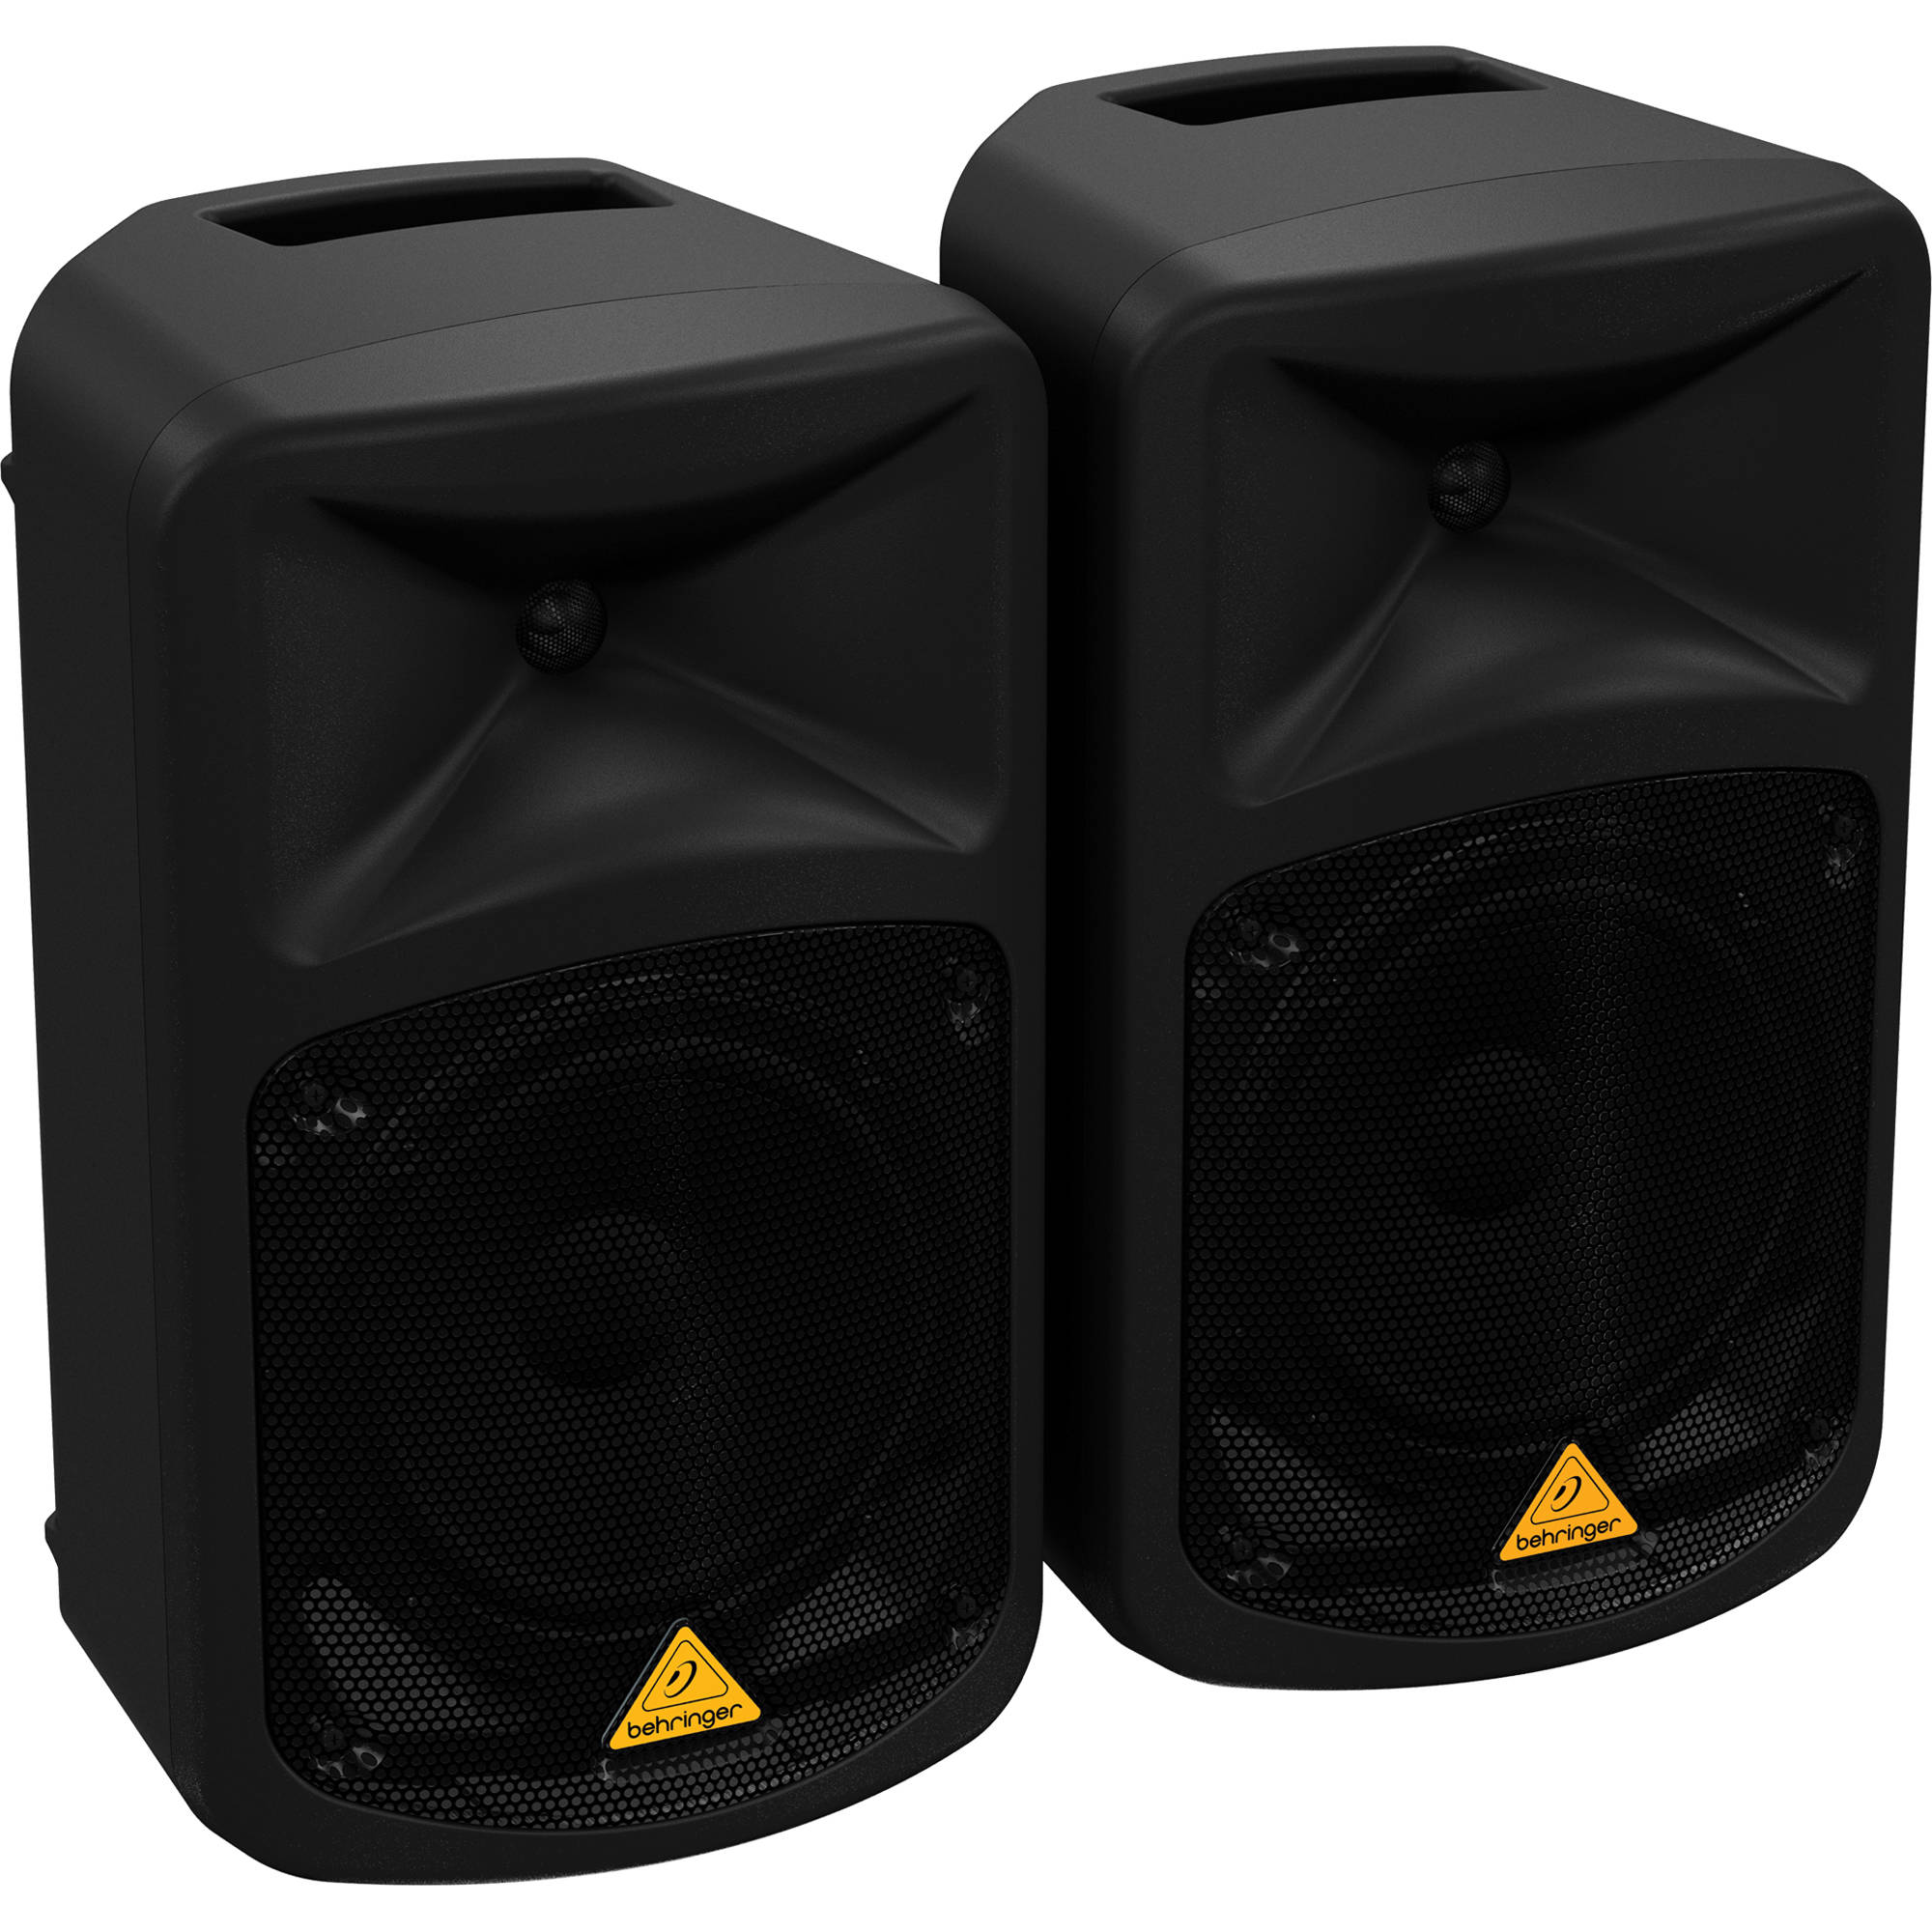 Behringer Europort Eps500mp3 500w 8 Channel Portable Audio Xlr Wiring Multiple Speakers Pa System